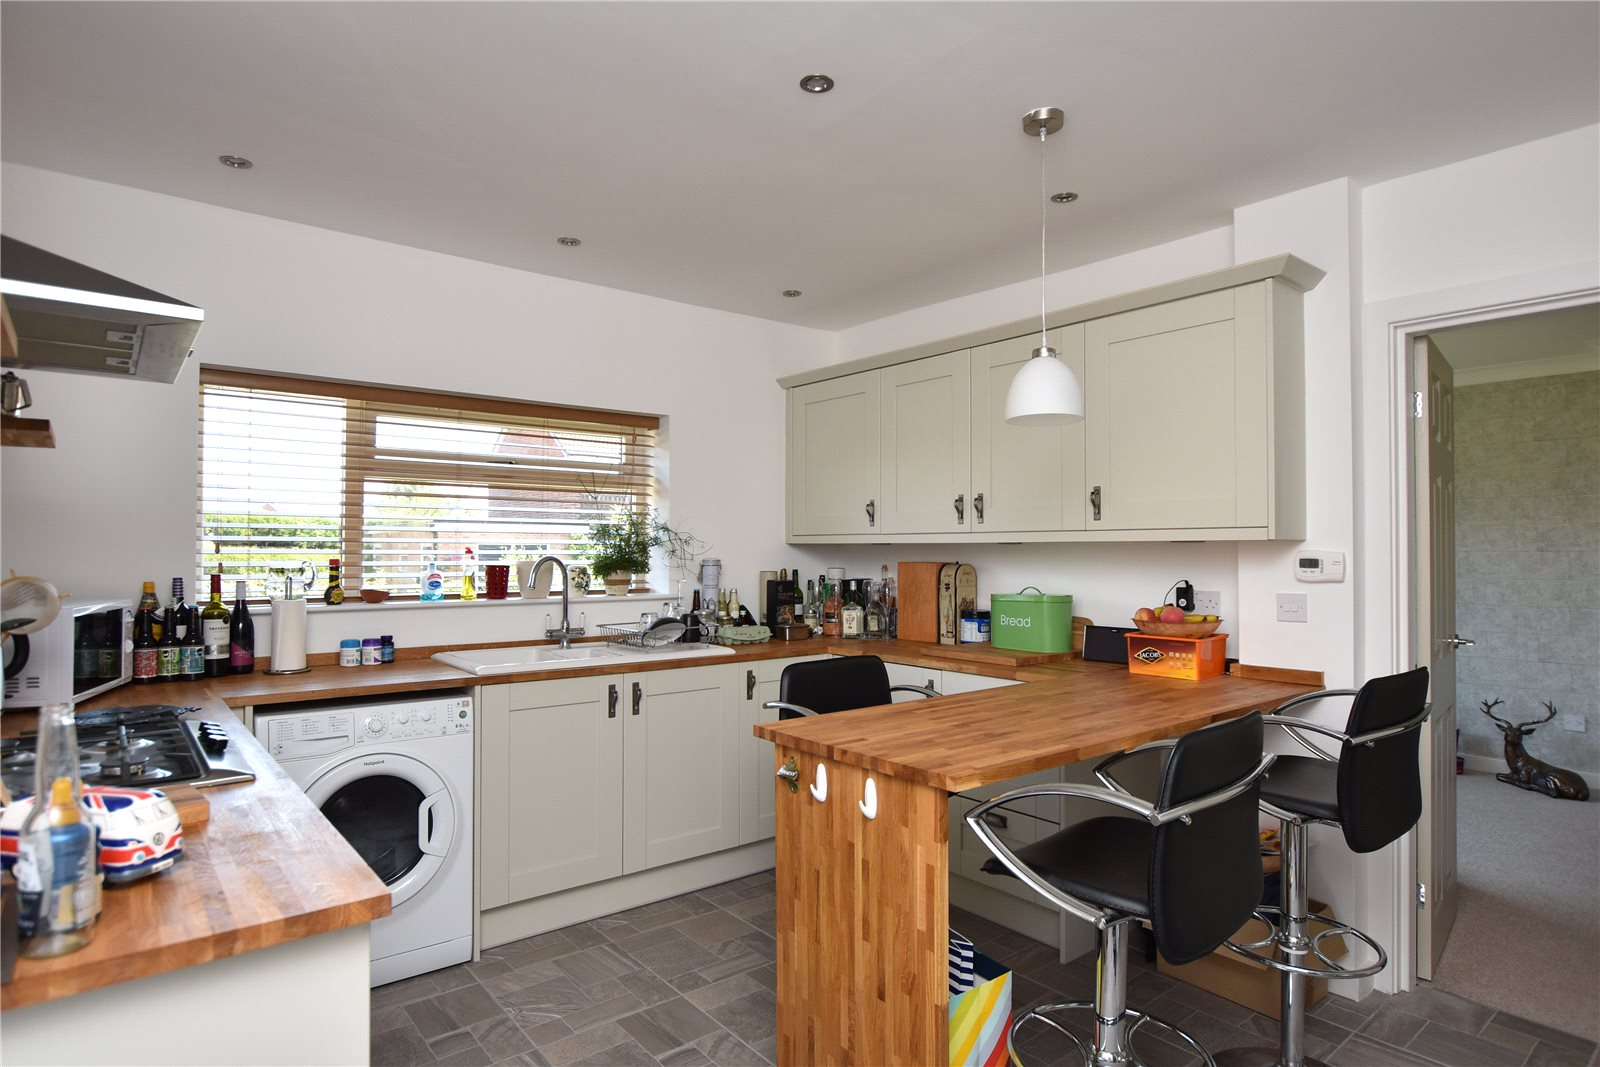 property to let in leeds, interior kitchen with breakfast bar, farm house cabinets